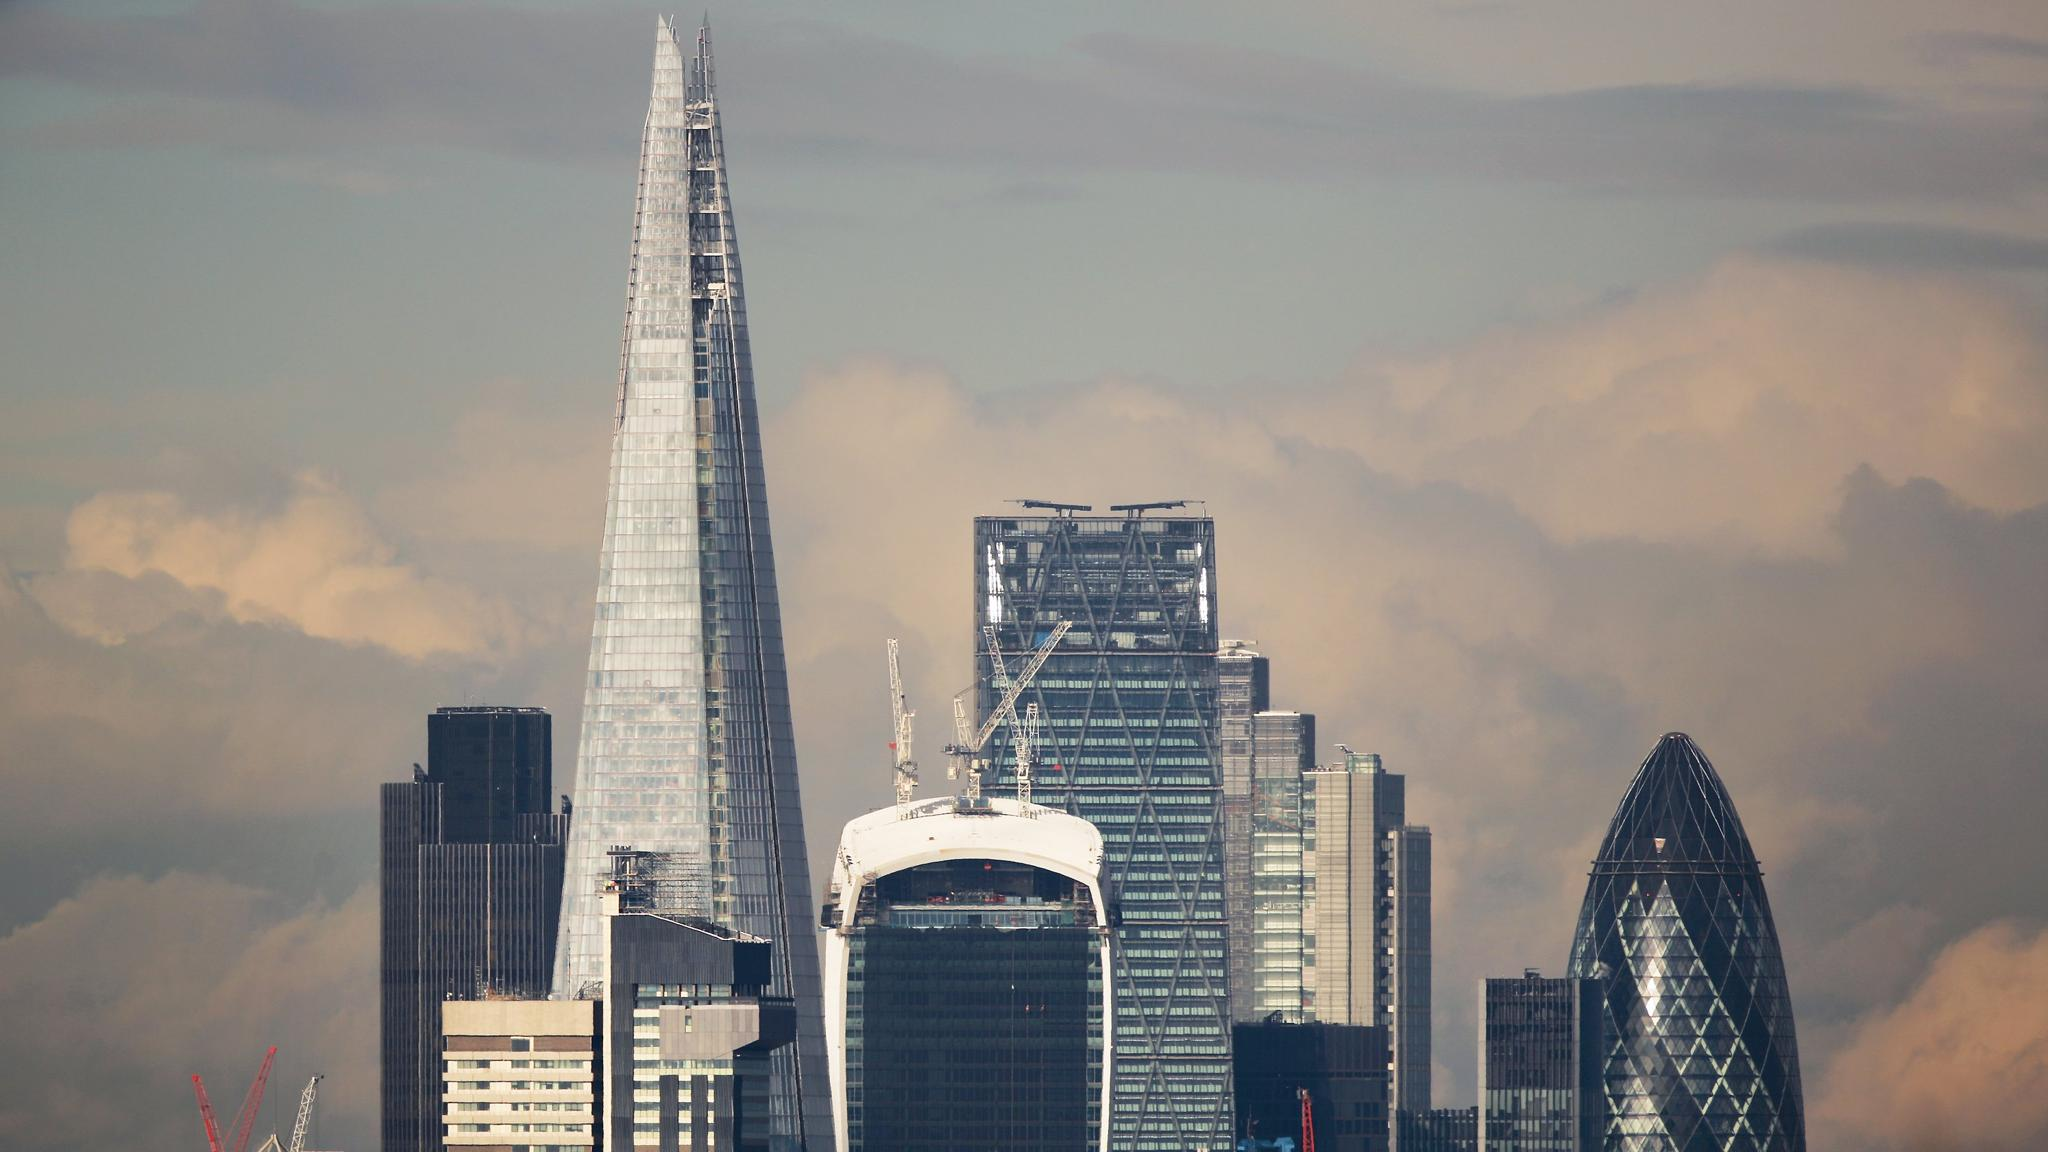 London financial sector's influence weakened by banking crisis